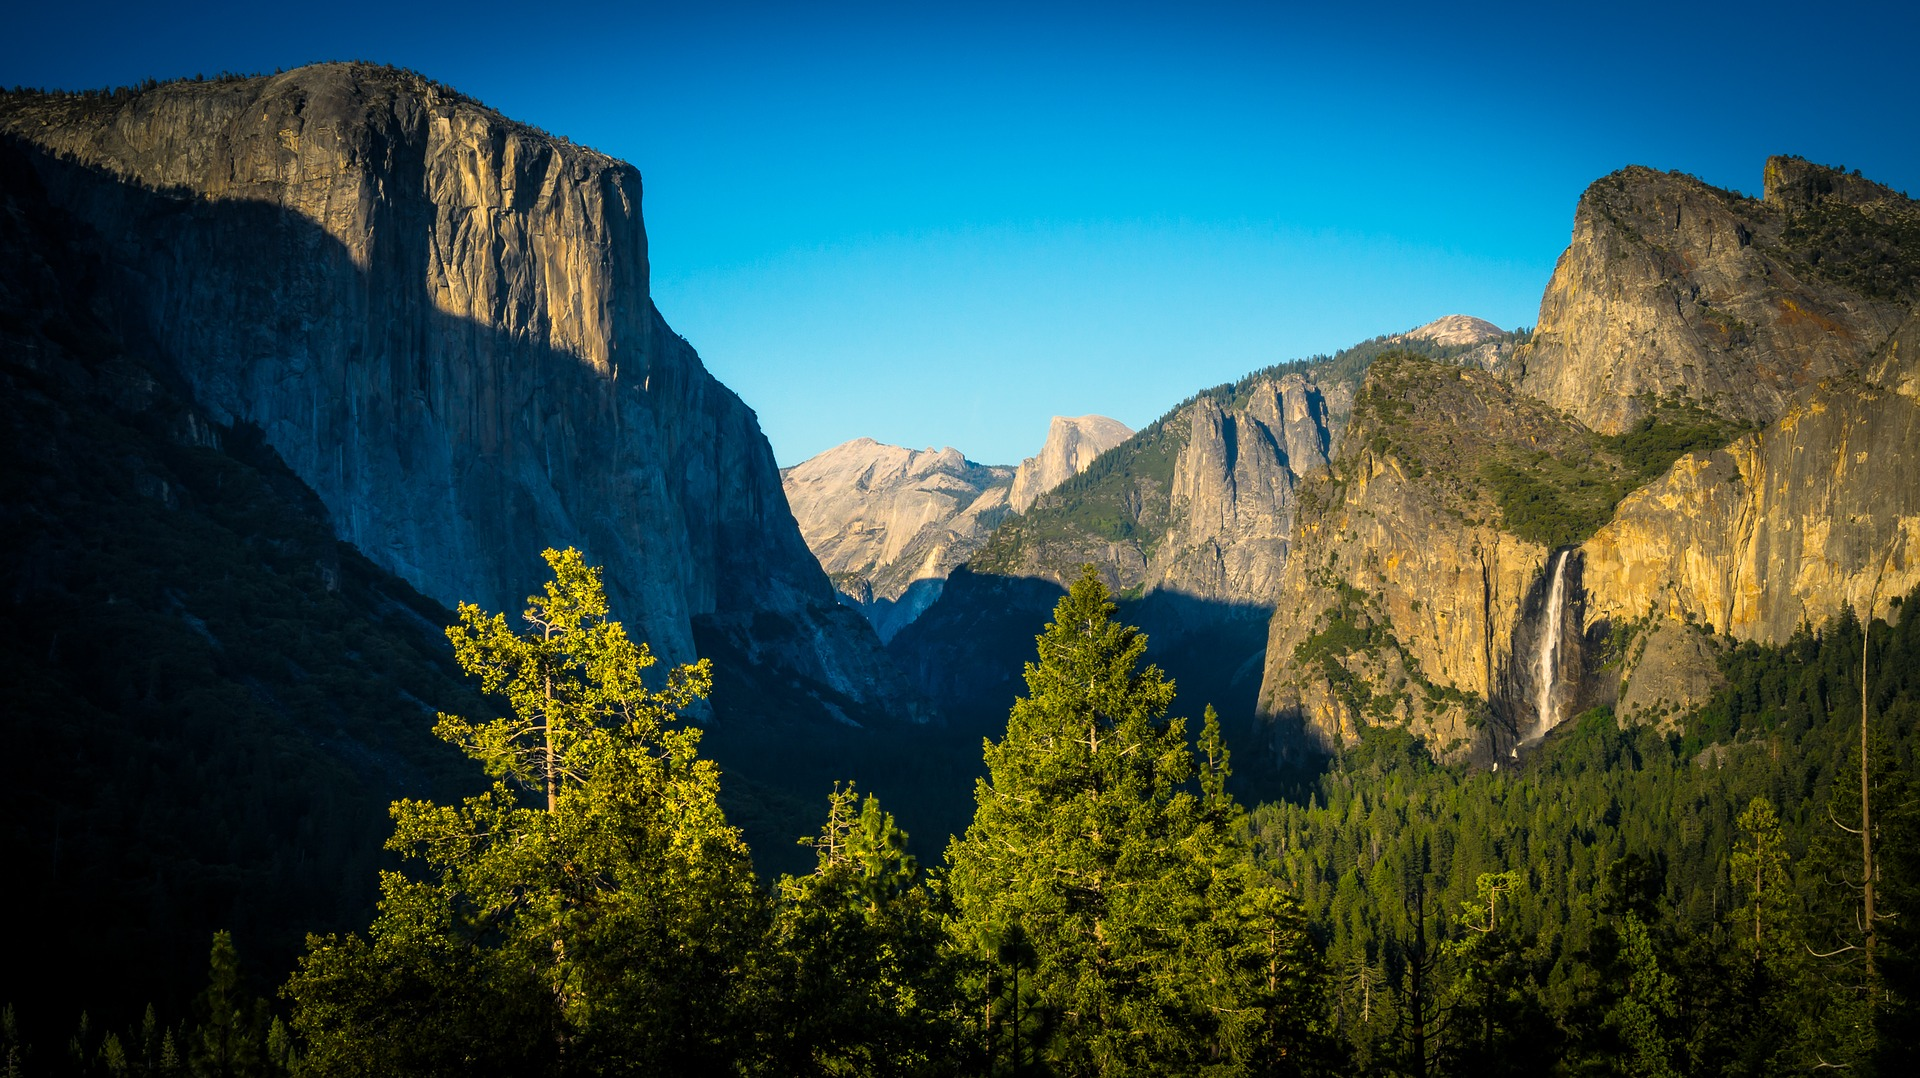 Sunset at Tunnel View, Yosemite National Park